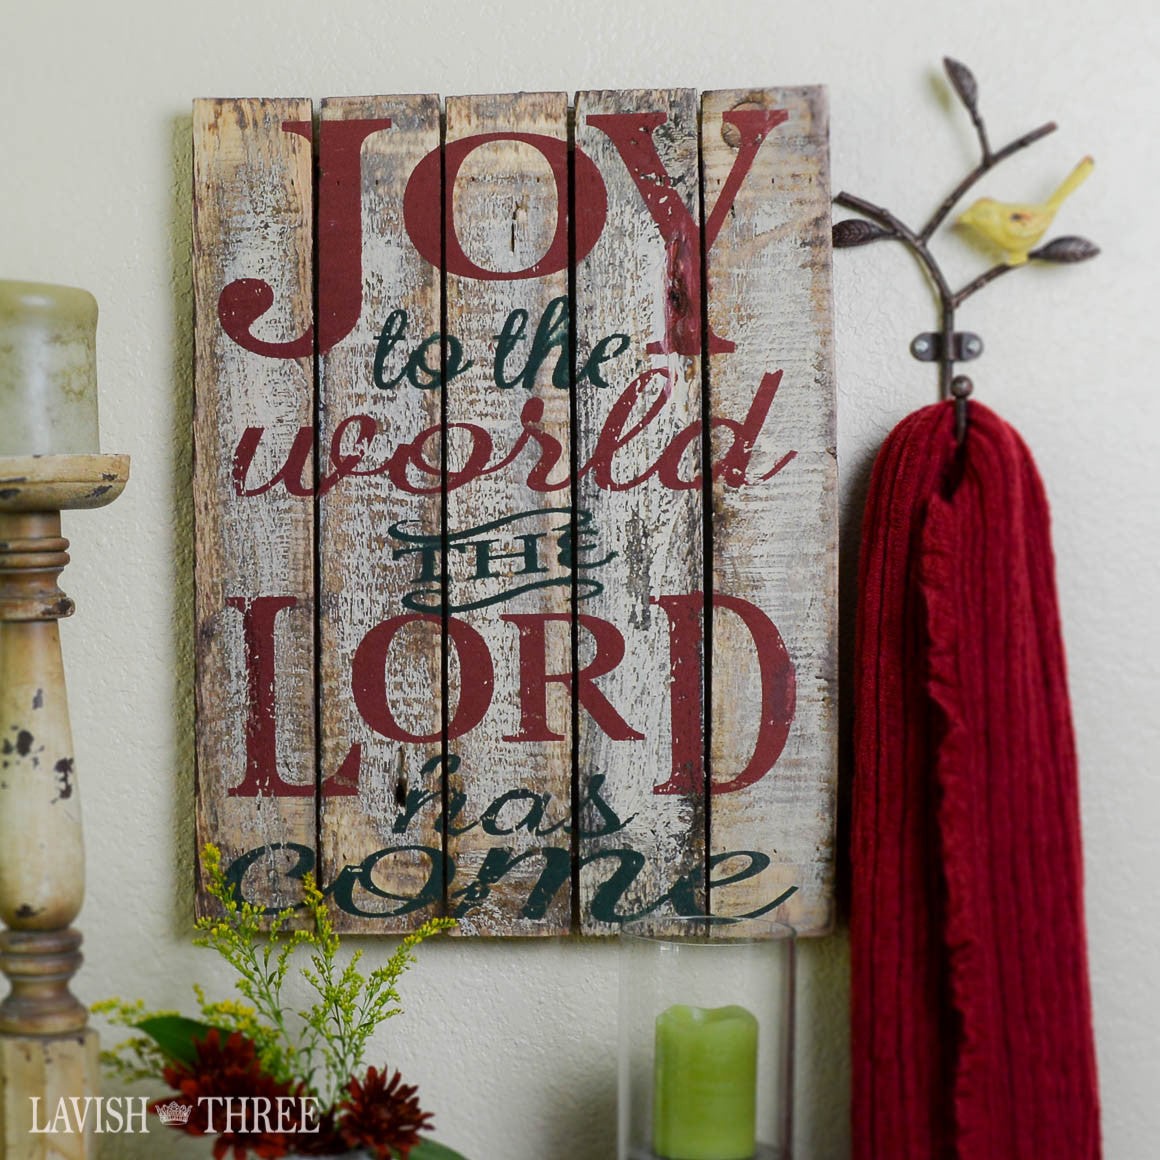 Holiday Joy to the world the Lord has come Christmas wall art painted on distressed wood